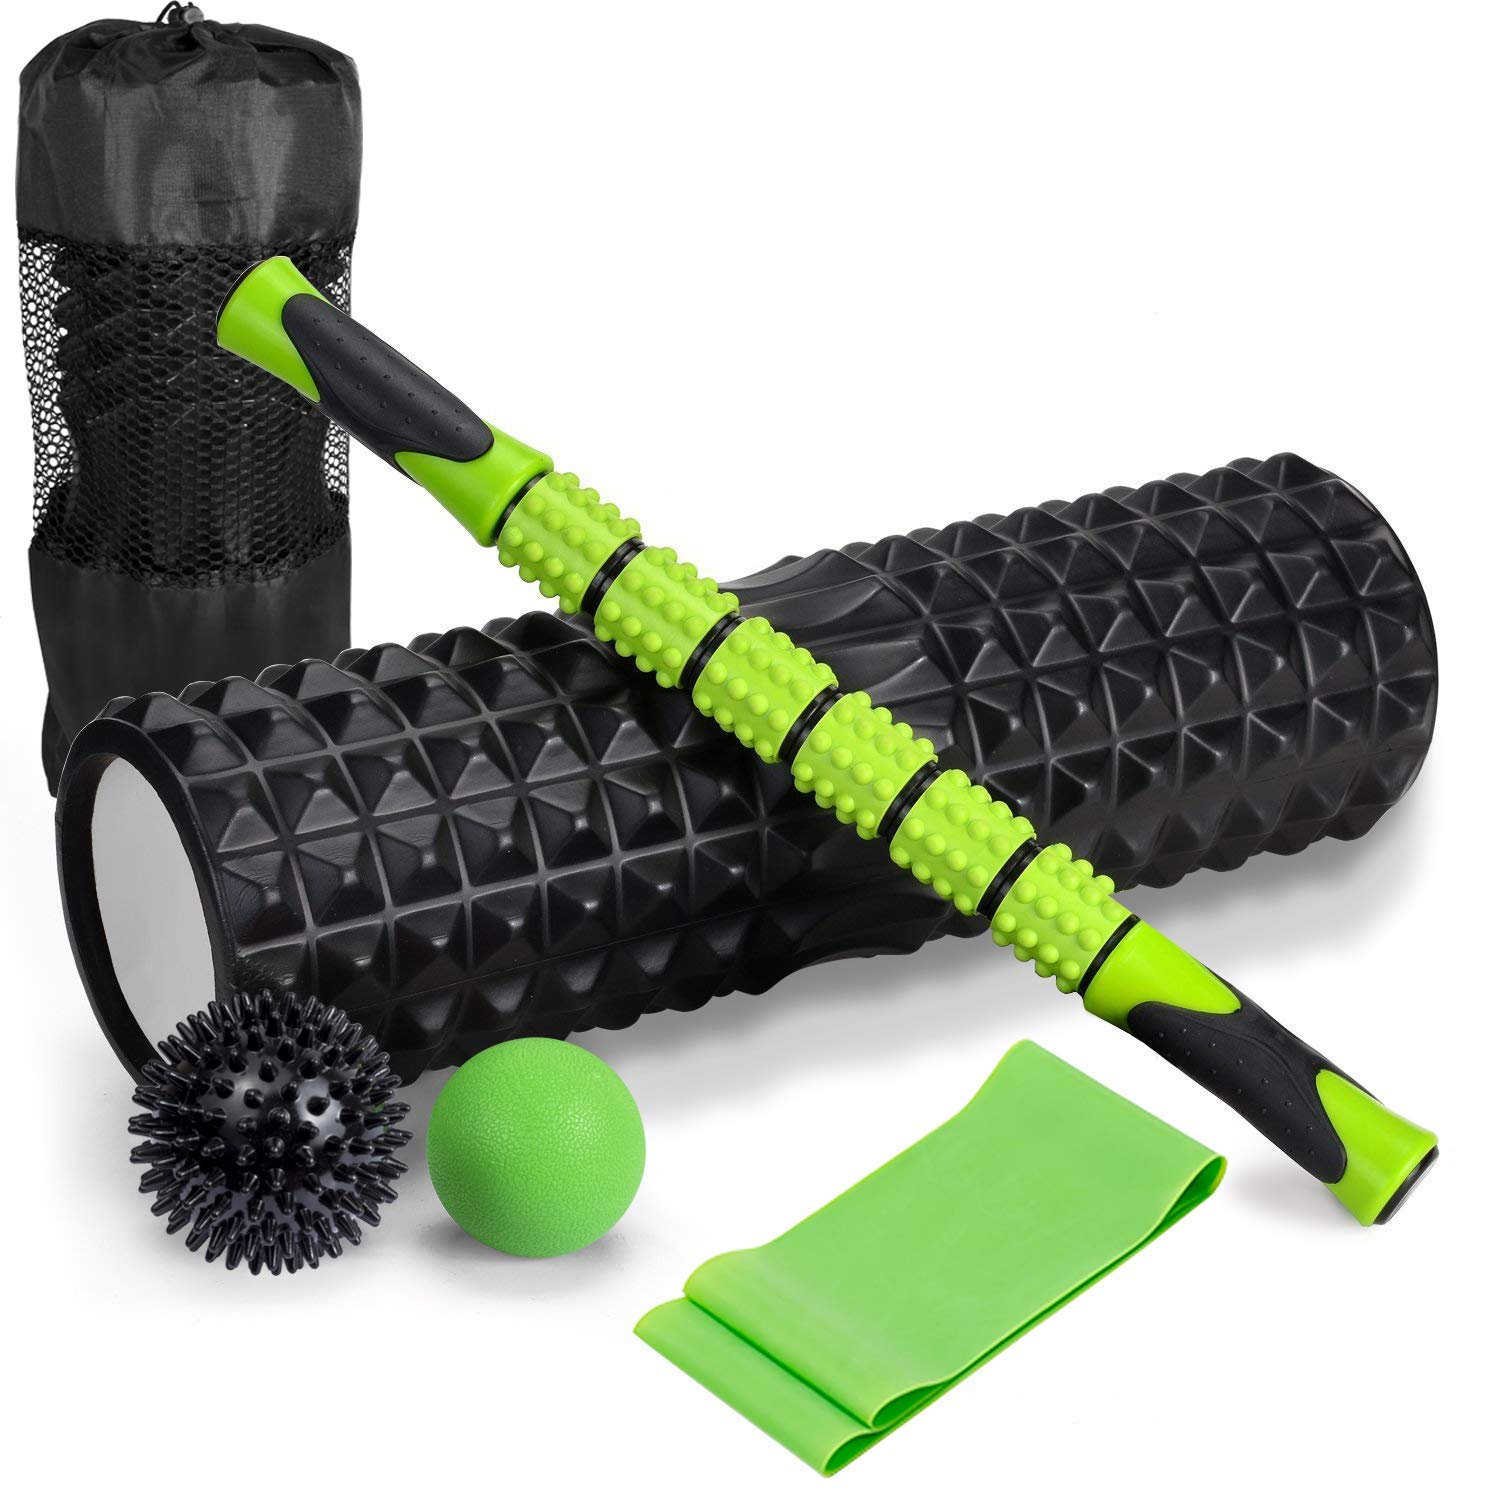 6 in 1 High Density Massage Foam Roller Kit 18'' Large Foam Roller with Muscle Roller Stick 2 Massage Balls & 1 Resistance Band for Avoid Physical Injury Prevention Stretching Yoga & Trigger Point